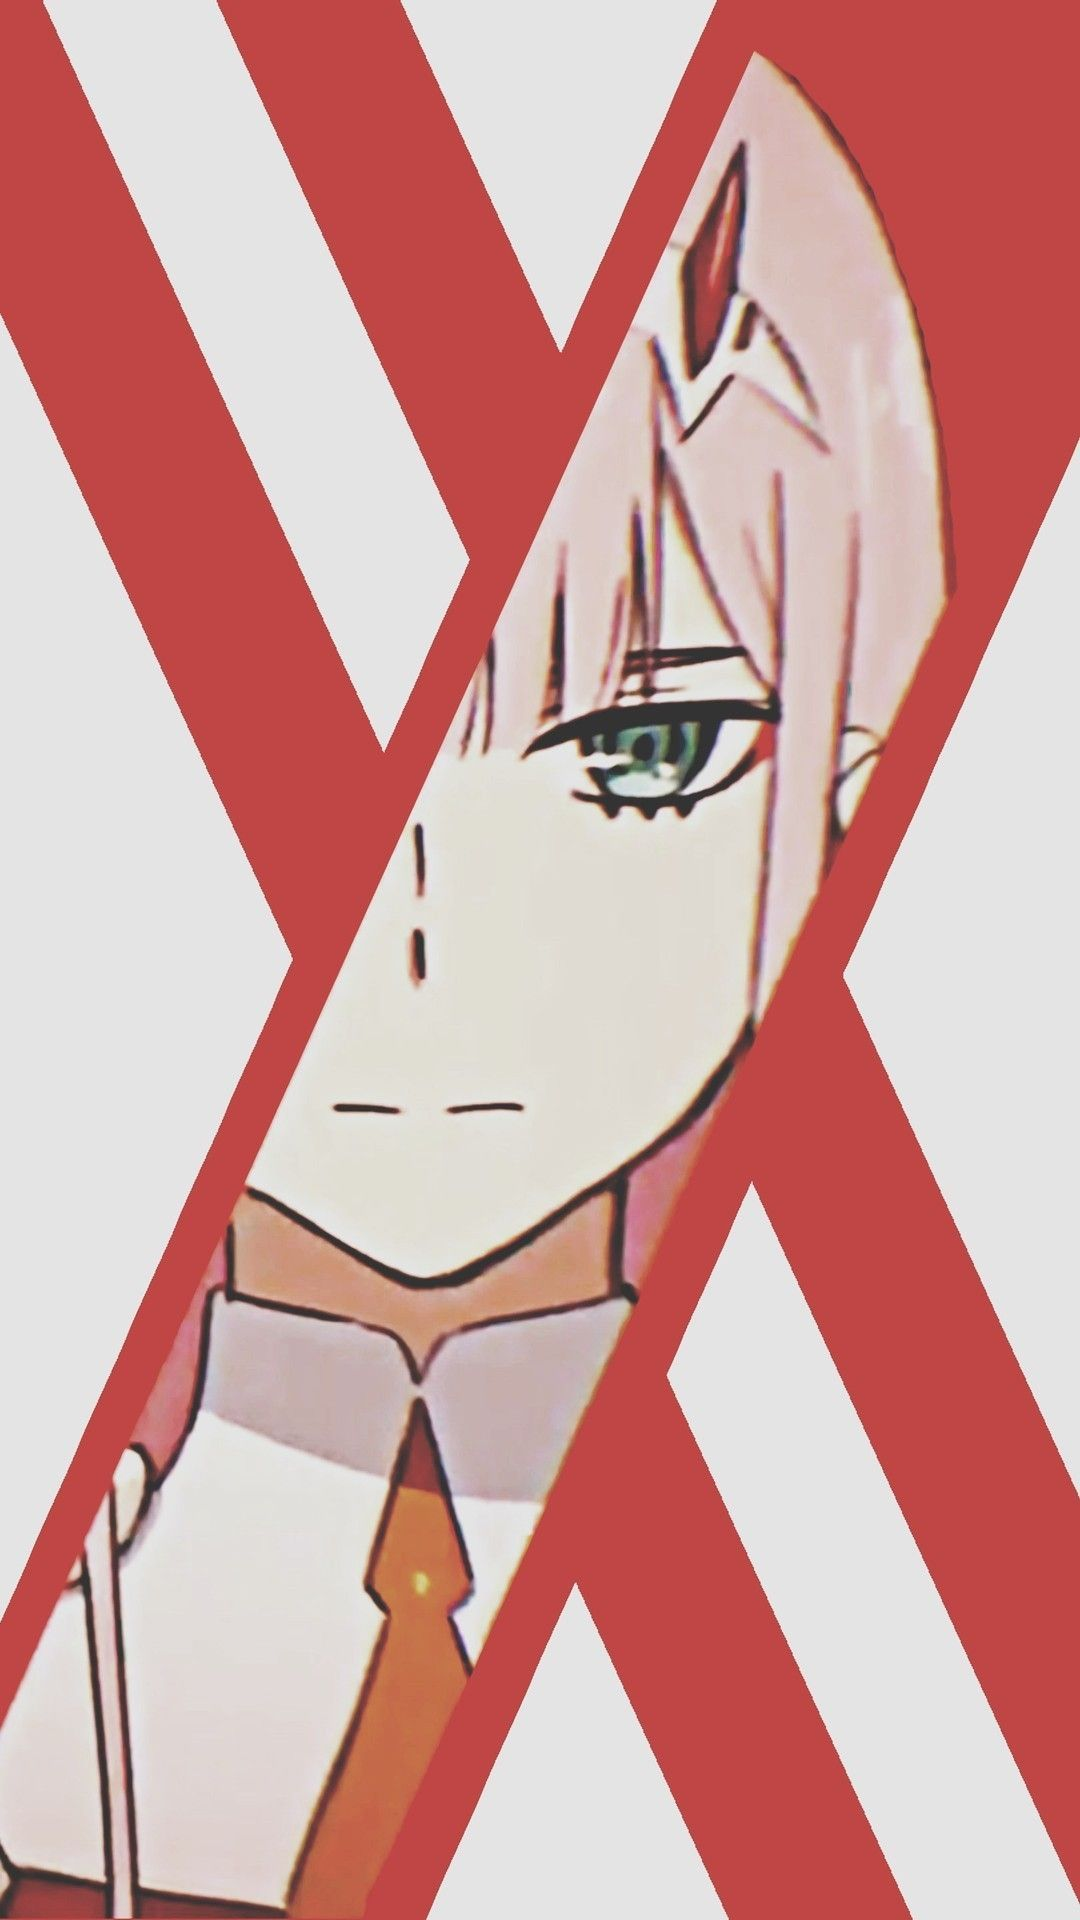 Darling In The Franxx Wallpapers Darling In The